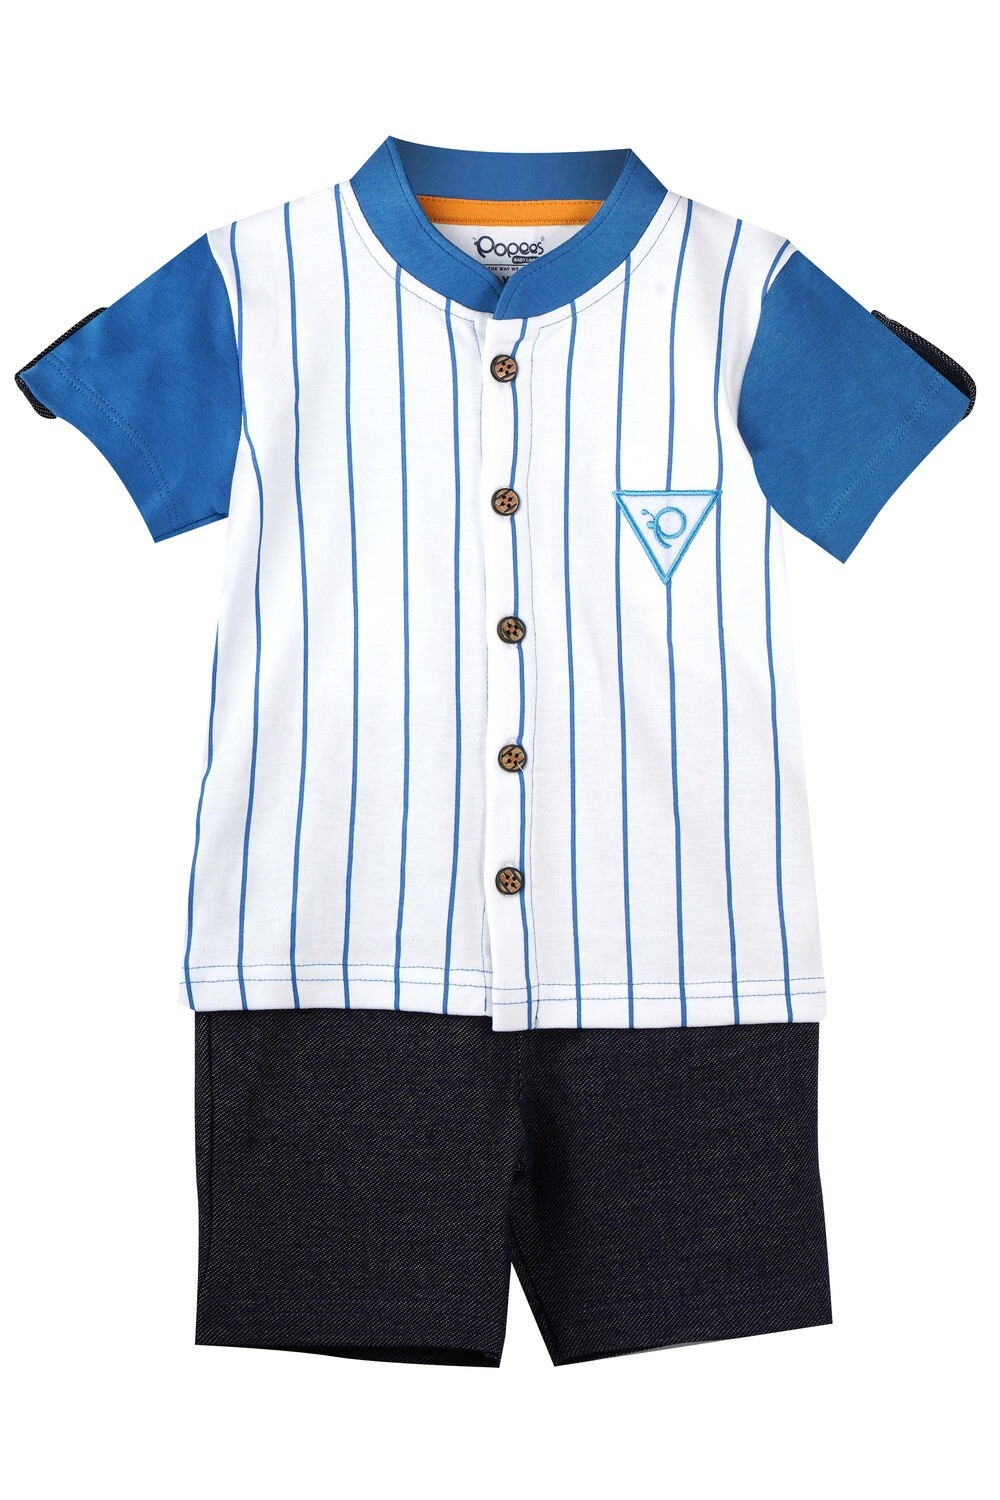 CHILL AZURE BLUE Half Sleeve Front Half Open Cotton Top and Shorts for Baby Boys